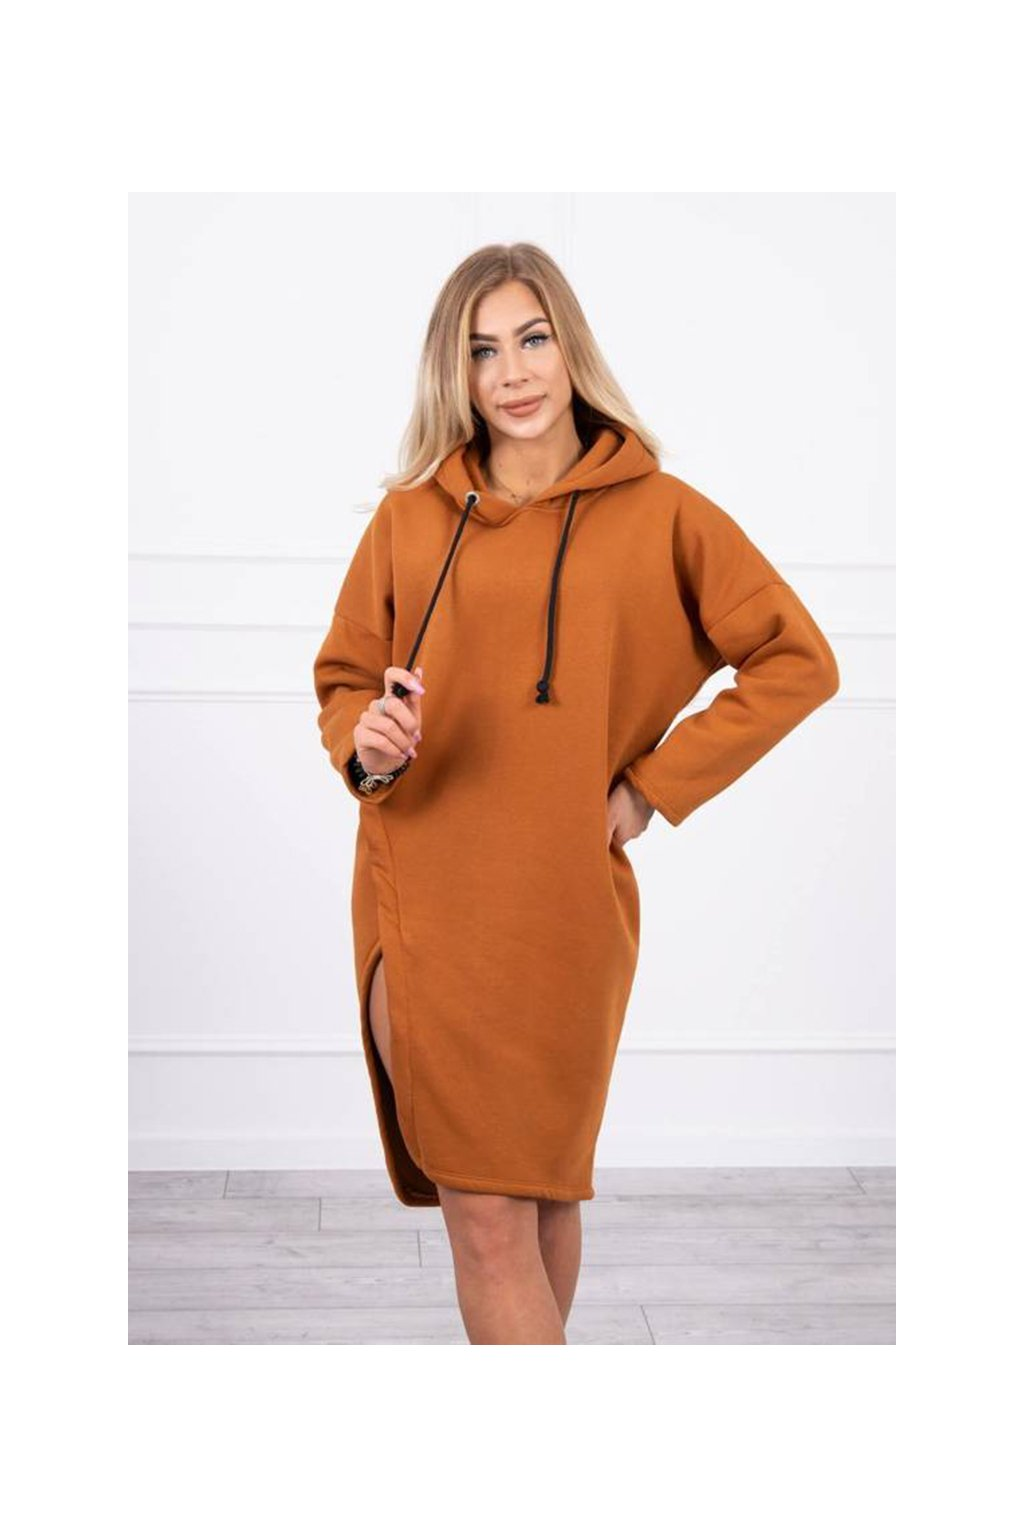 eng pm Dress with a hood and a slit on the side camel 19530 6